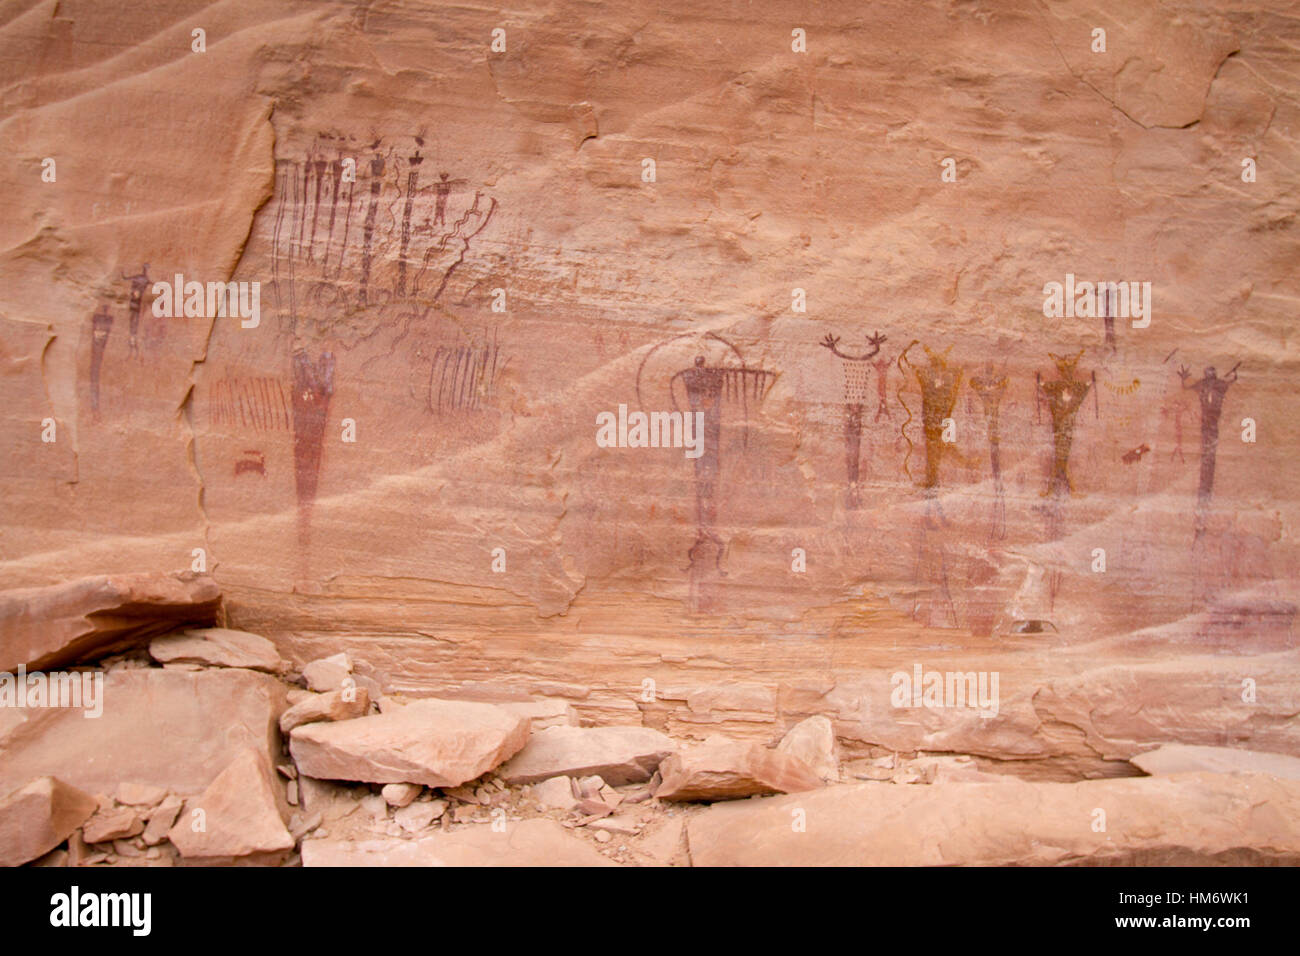 Tribal art on rock - Stock Image